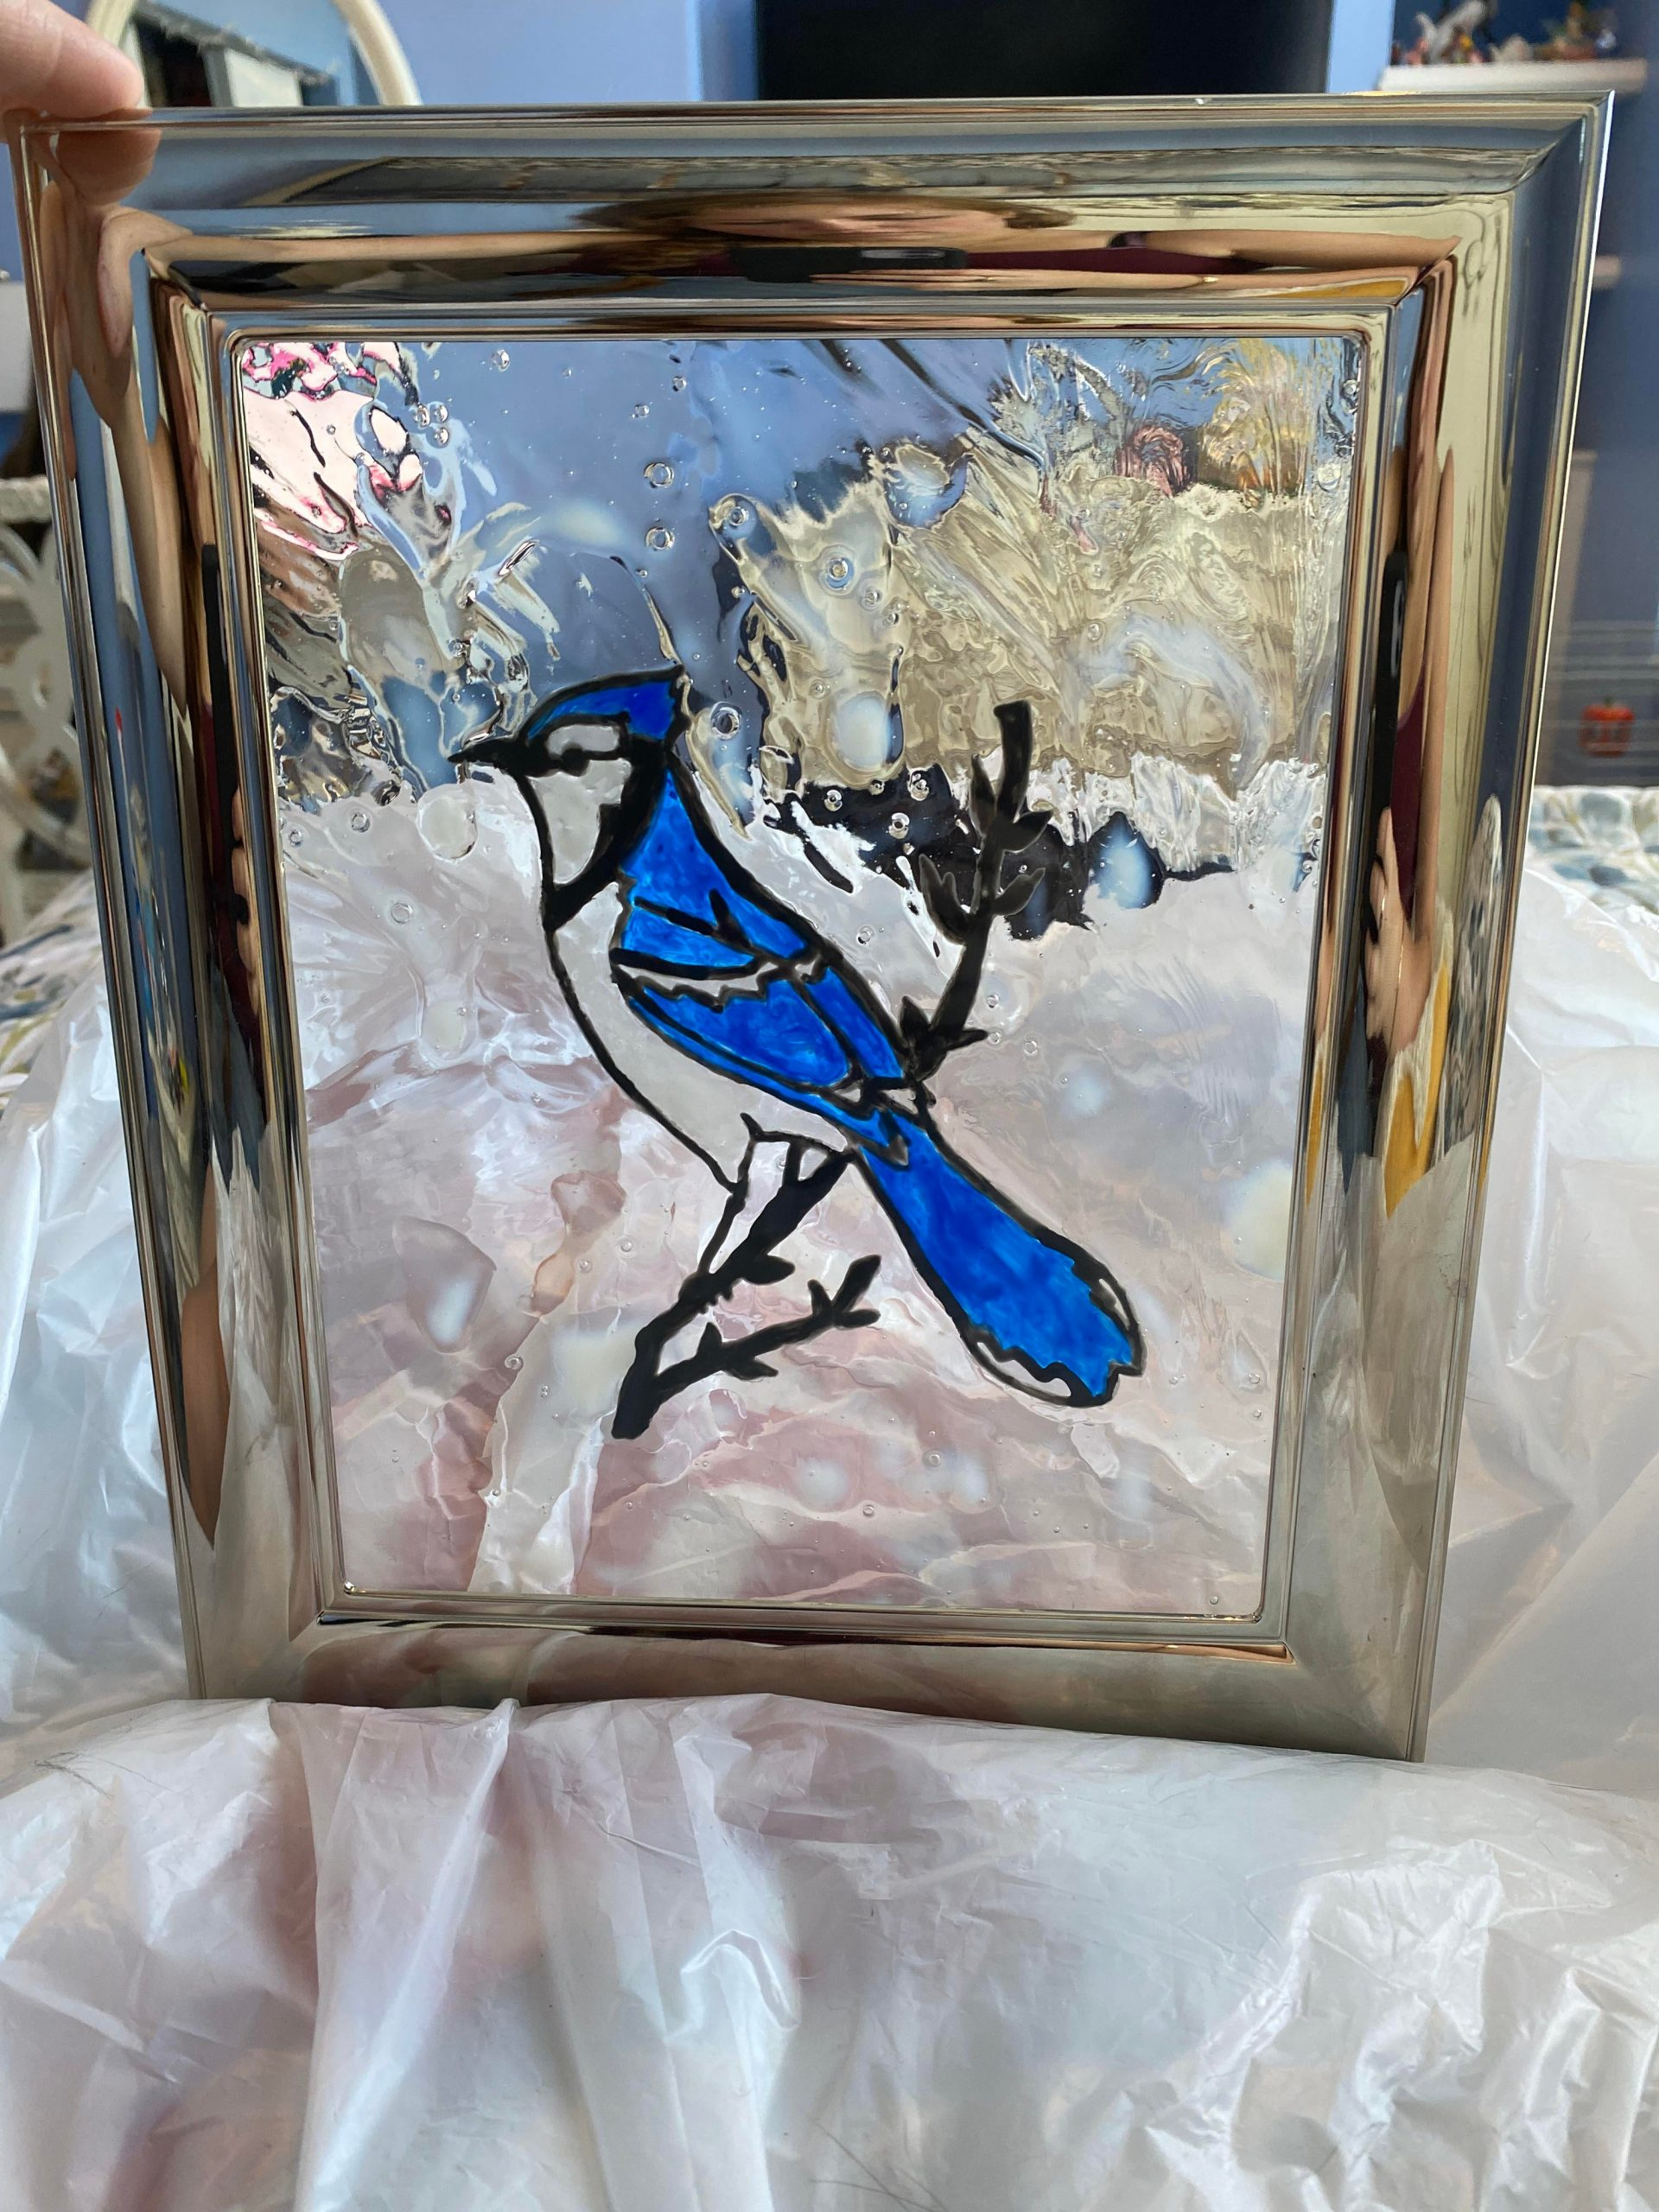 """jhhvpwrqhdm51 scaled - Saw someone make """"stained glass"""" with picture frames on Instagram and decided to try it out and make this gift for my dad. :) - hobbies, crafts"""